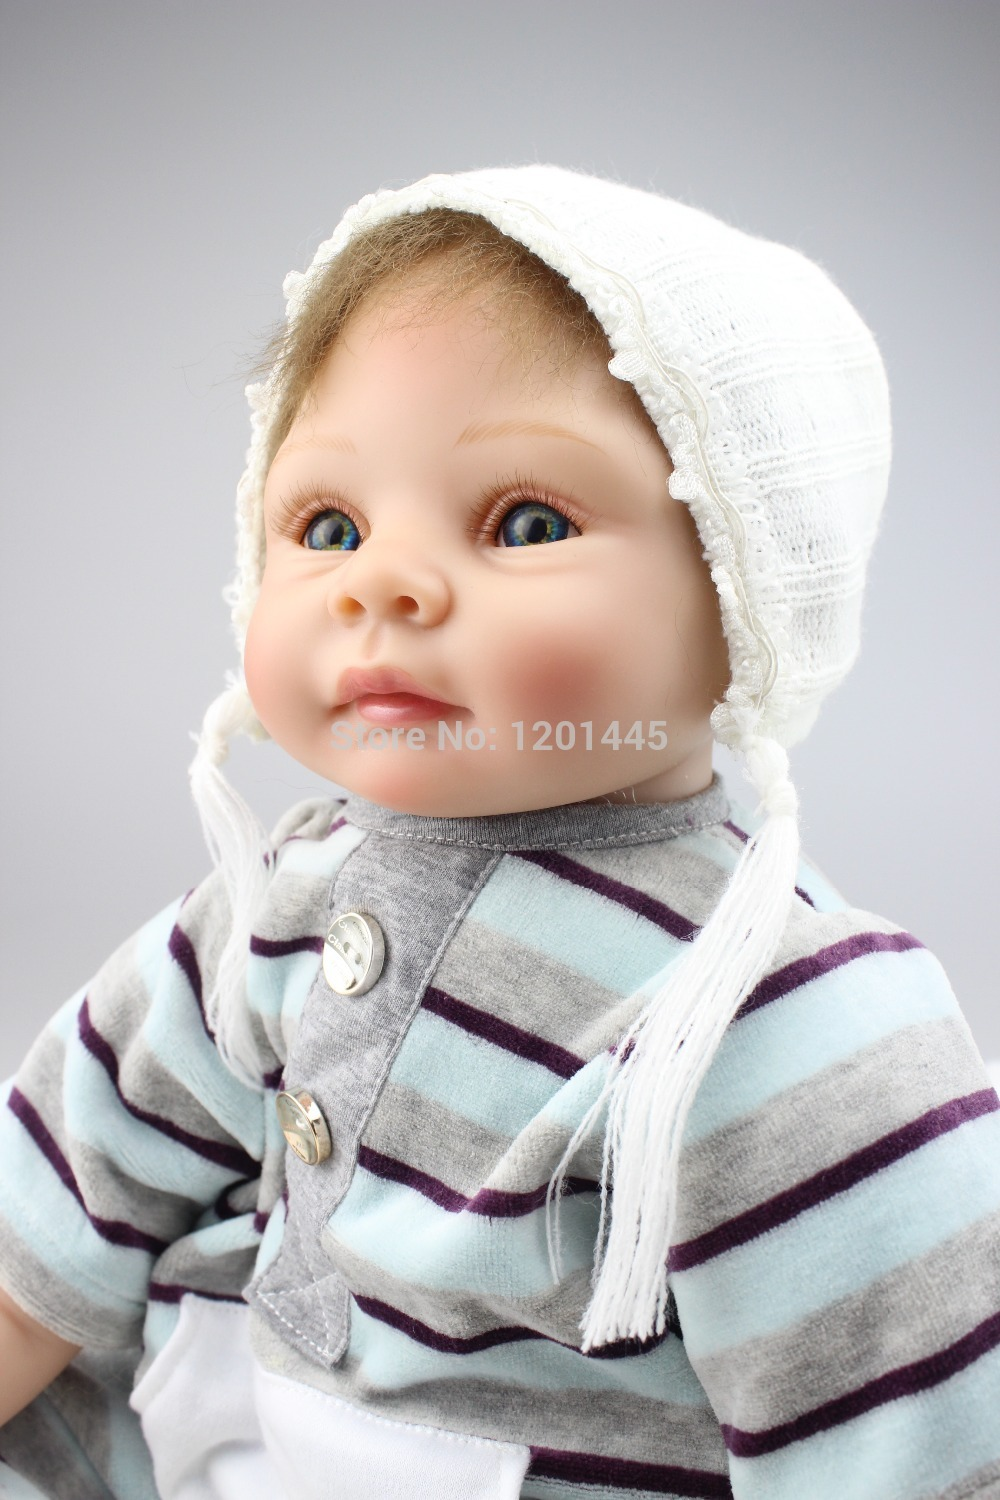 doll alive reborn doll with soft real gentle touch hotsale lifelike baby dolls fashion doll silicone vinyl for children new fashion design reborn toddler doll rooted hair soft silicone vinyl real gentle touch 28inches fashion gift for birthday